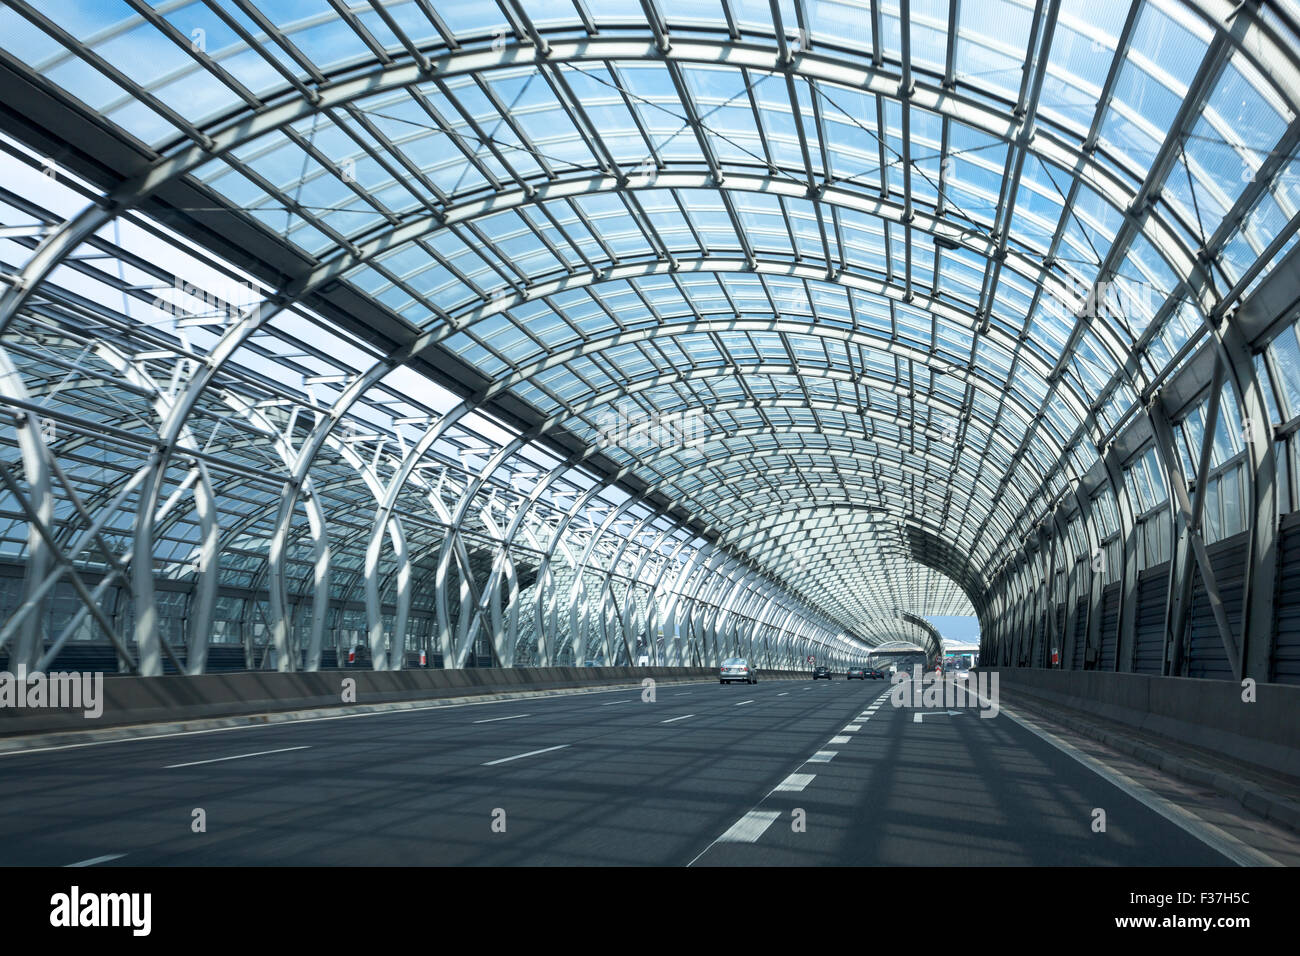 Road with sound barriers to reduce sound pollution in central Warsaw, Poland - Stock Image